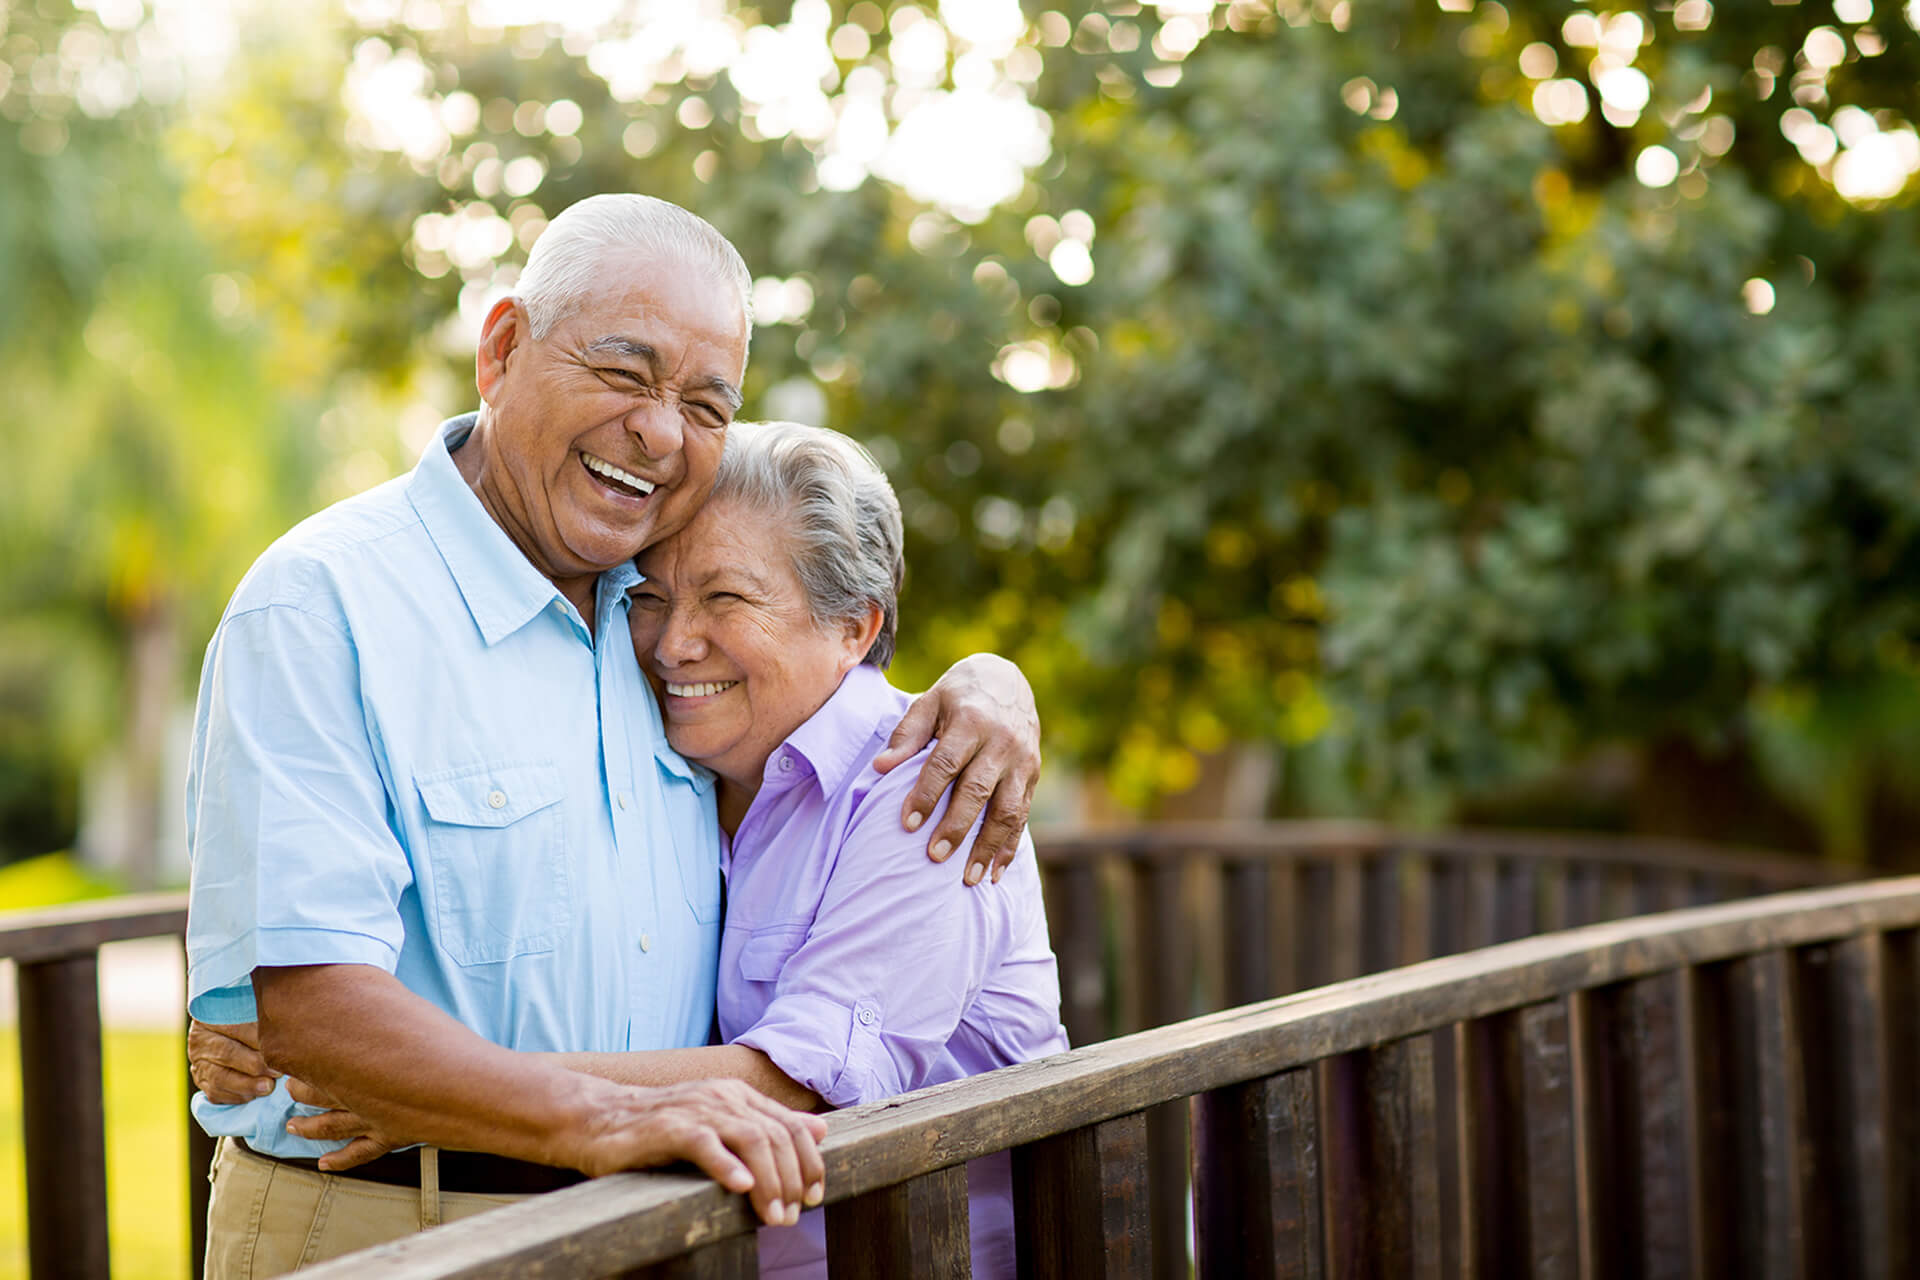 Is retirement annuity a good or bad idea?